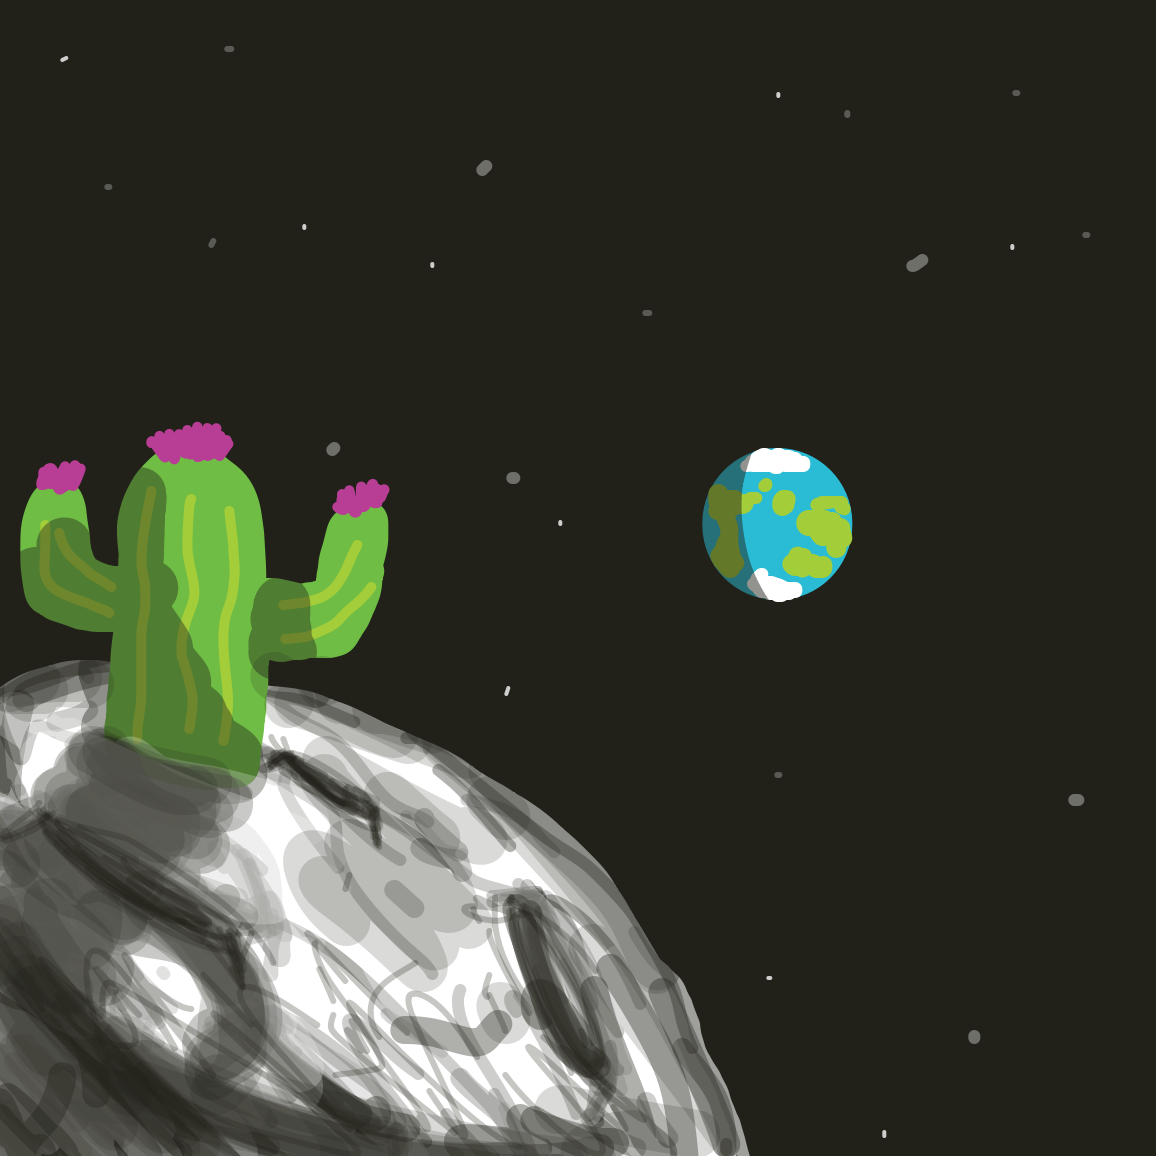 Drawing in Cactus adventure #1 by joshyouart